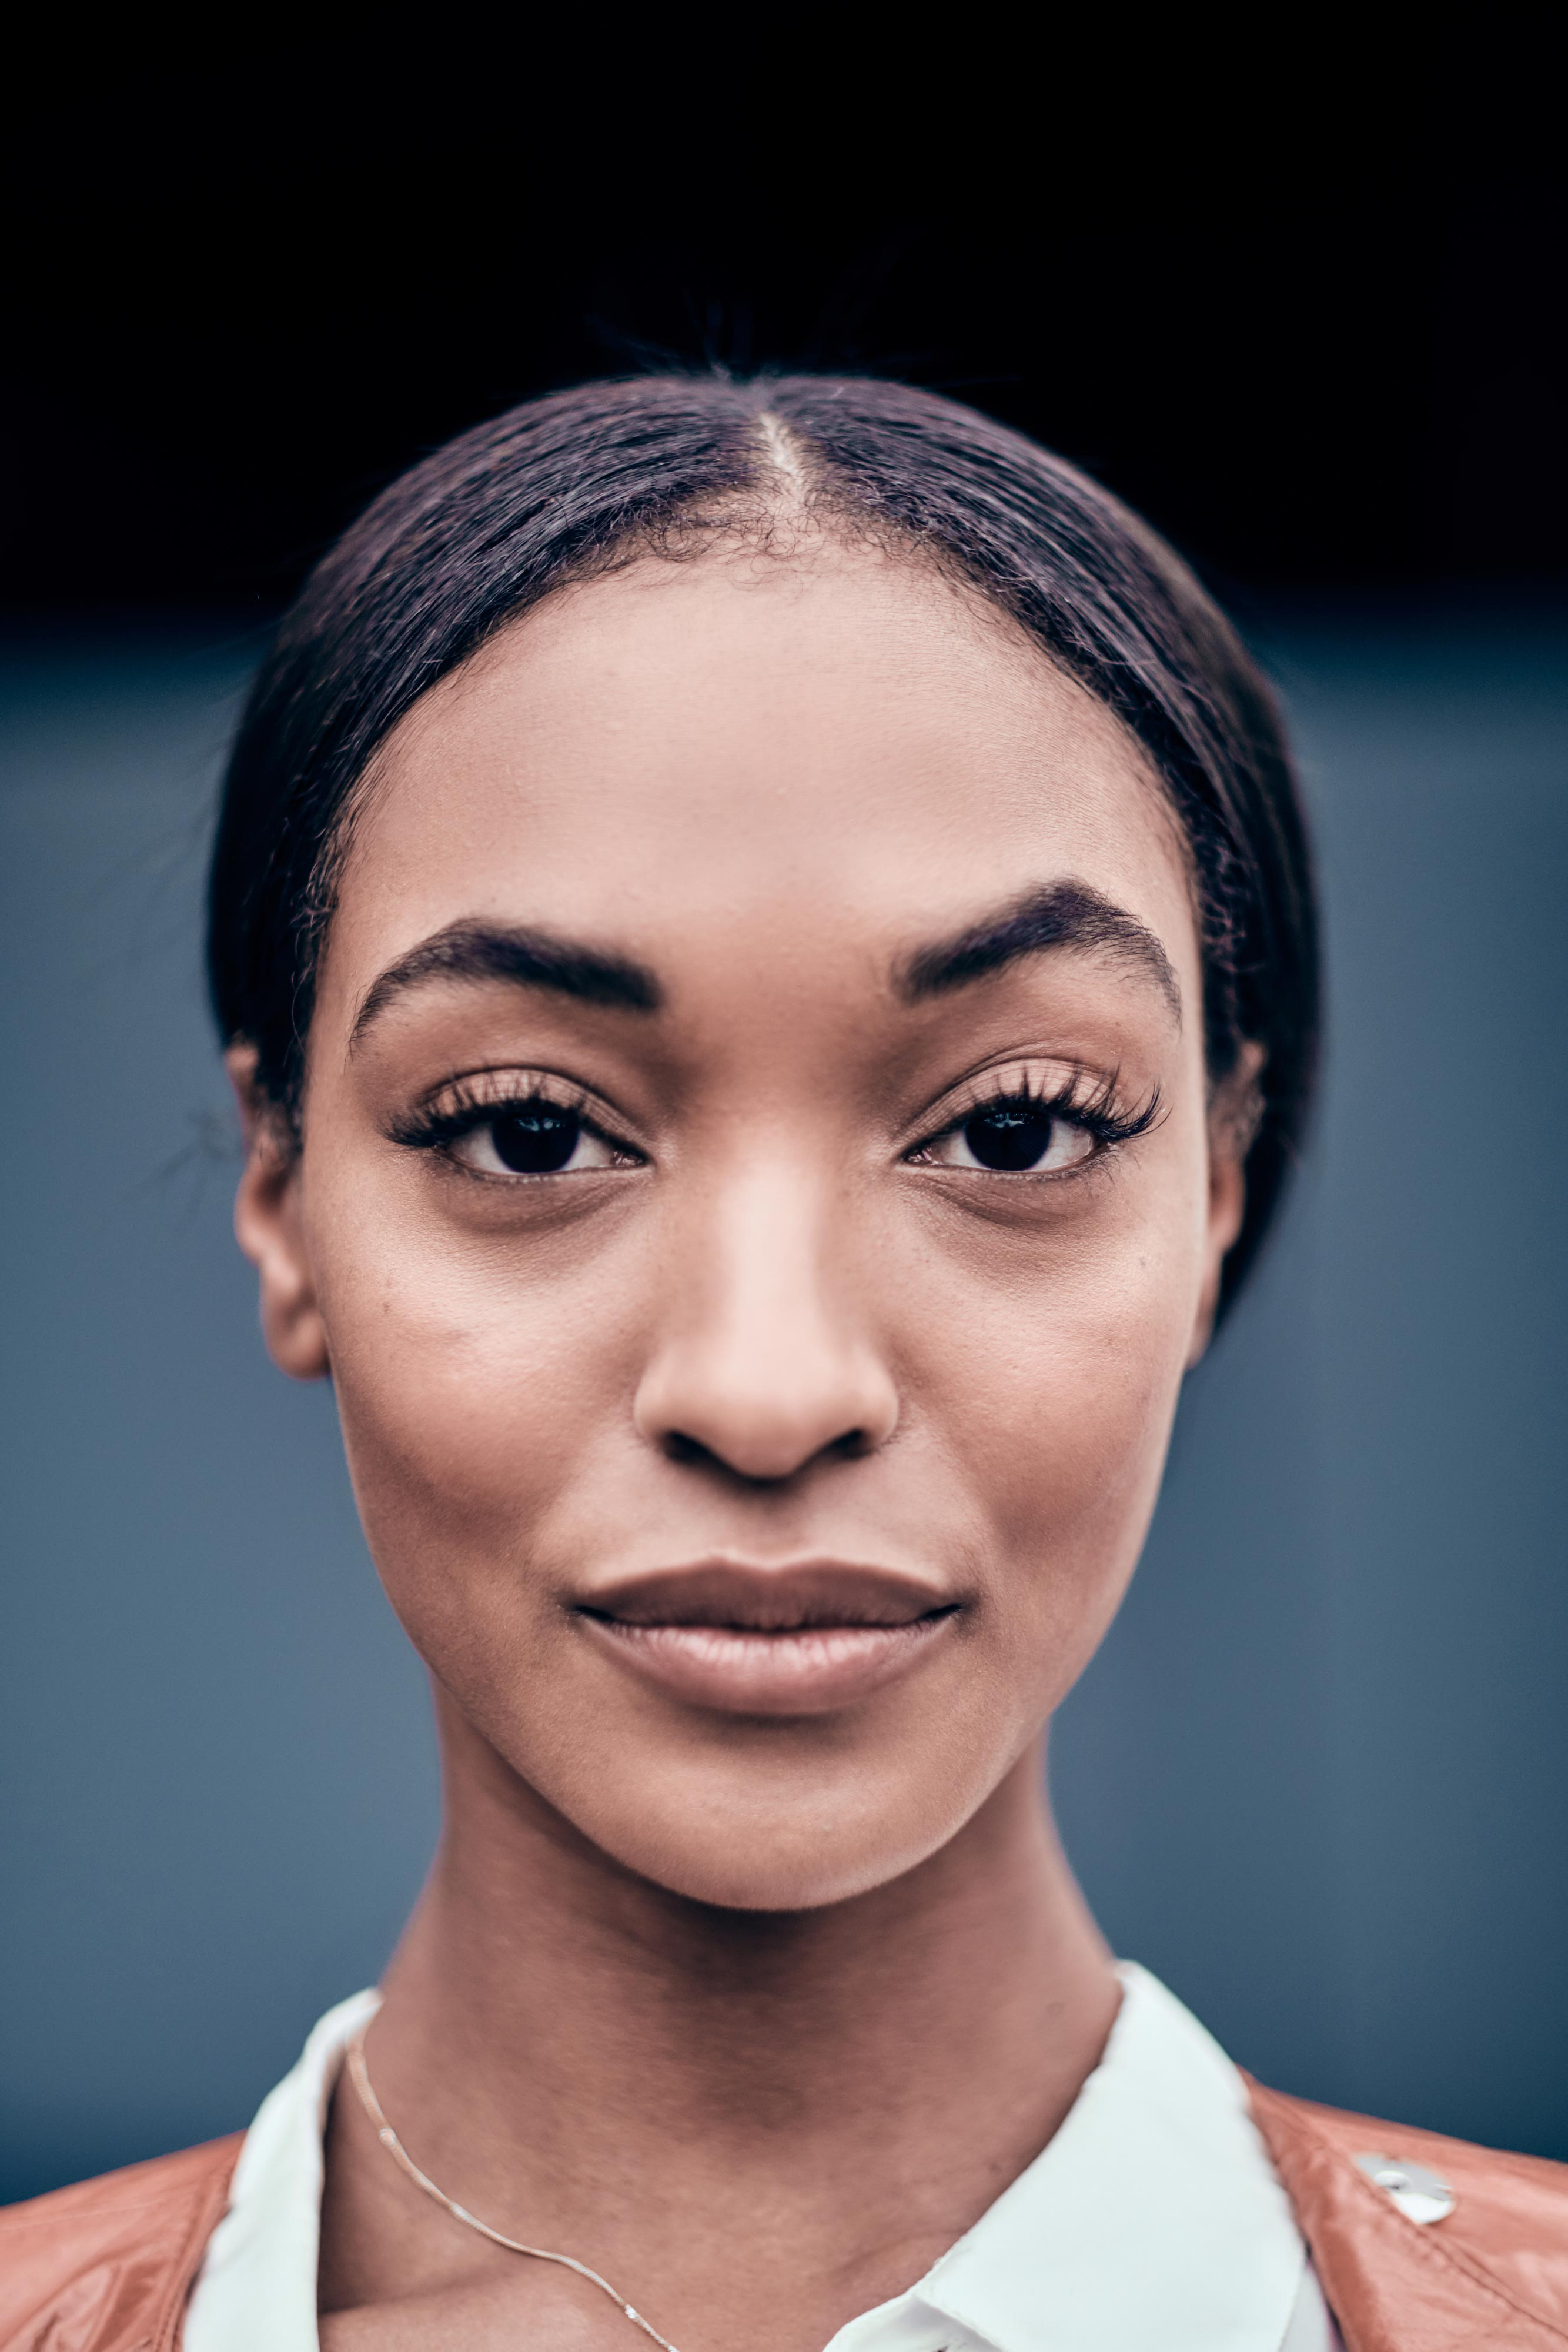 The 30-year old daughter of father (?) and mother Dee Dunn Jourdan Dunn in 2021 photo. Jourdan Dunn earned a  million dollar salary - leaving the net worth at 12 million in 2021